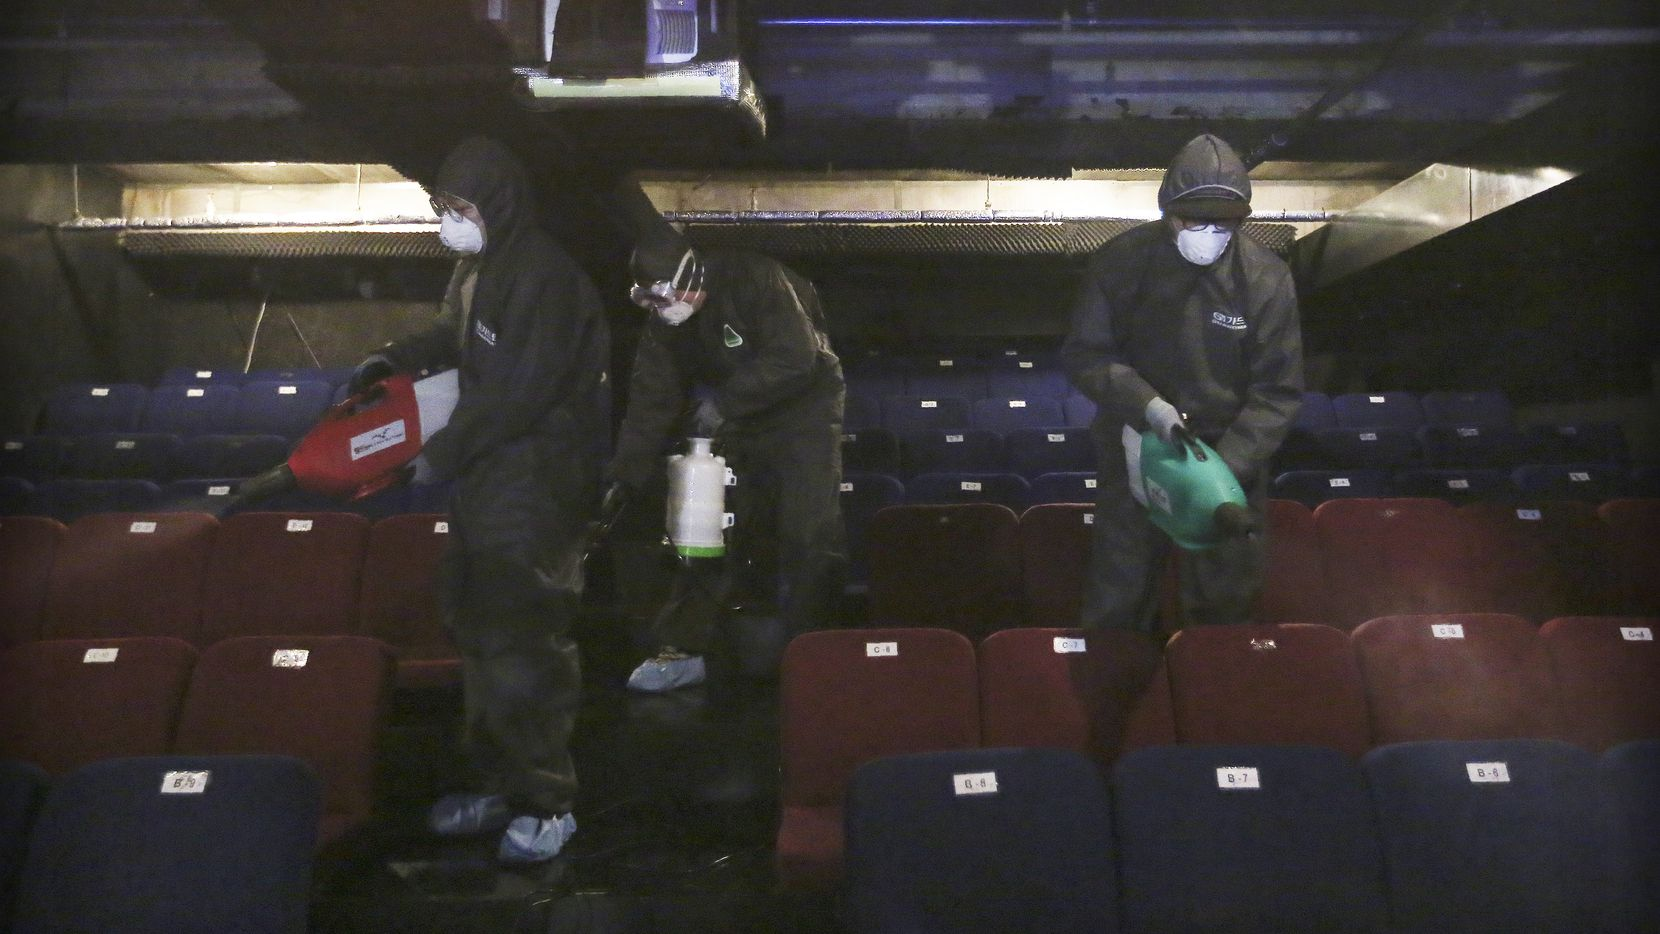 Workers wearing protective gear spray disinfectant as a precaution against a new coronavirus at a theater in Seoul, South Korea, Thursday, Feb. 6, 2020.